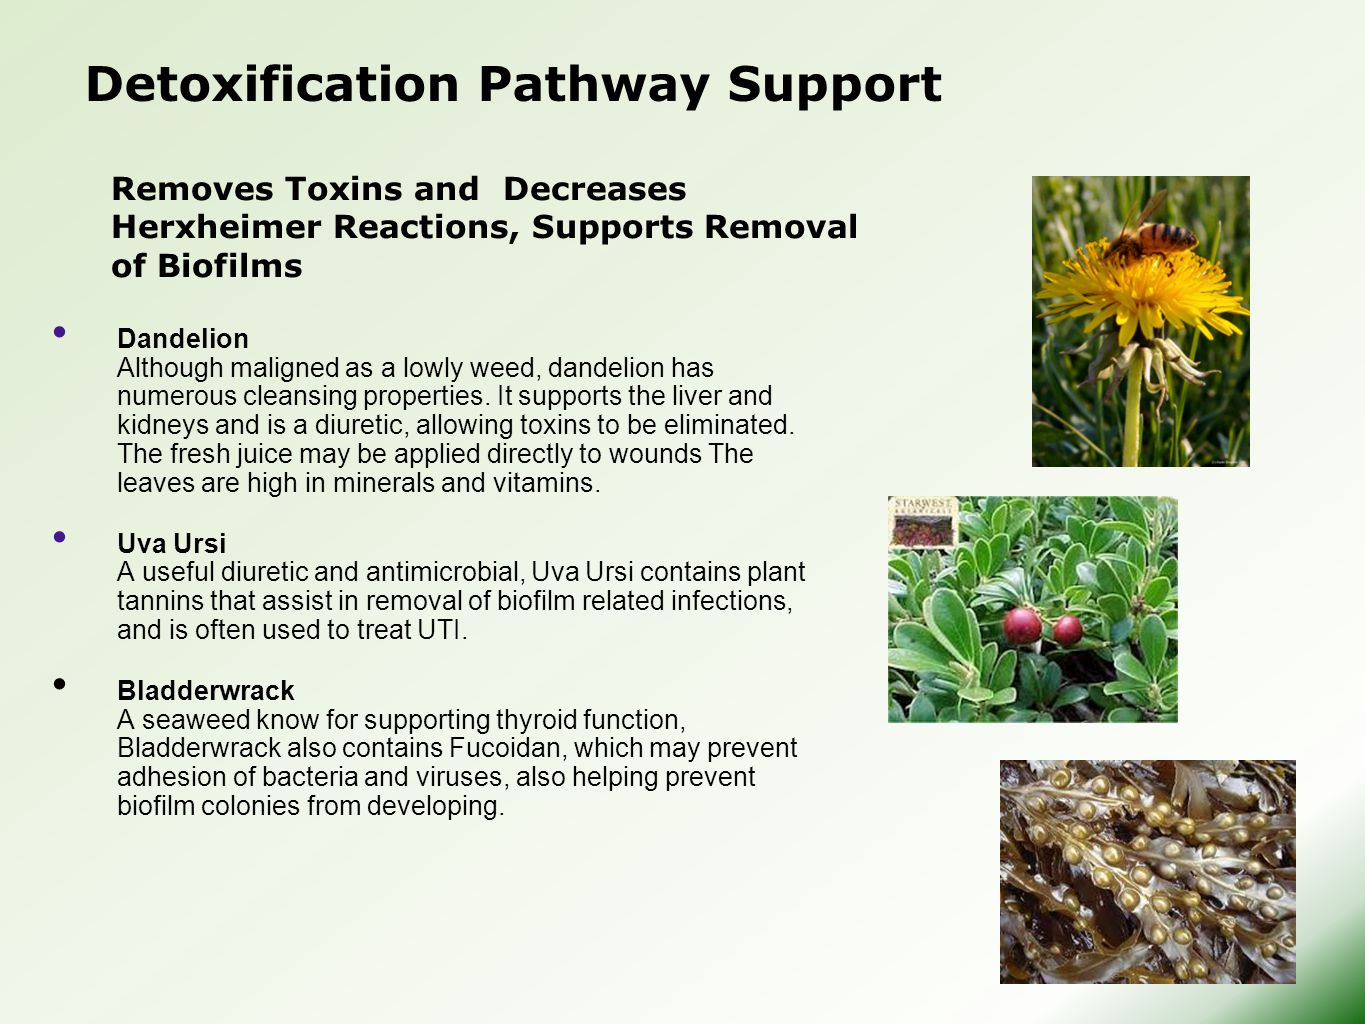 Detoxification Pathway Support